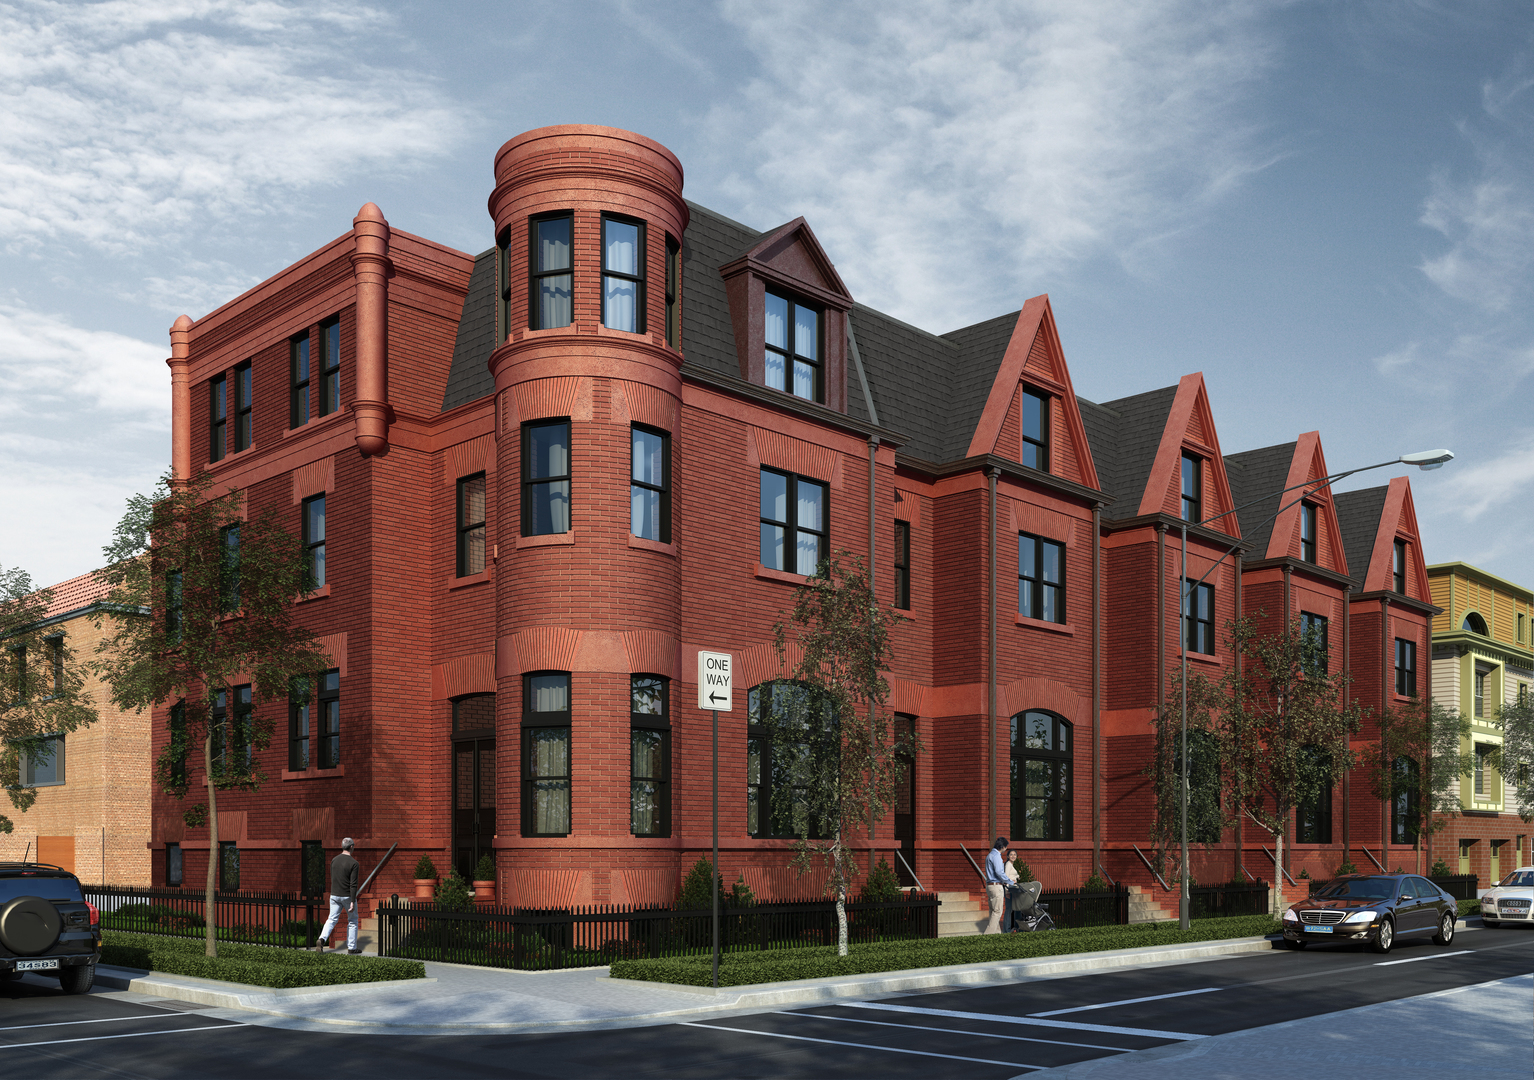 Villas / Townhouses for Sale at 1758 North Cleveland Avenue 1758 North Cleveland Avenue Chicago, Illinois,60614 United States